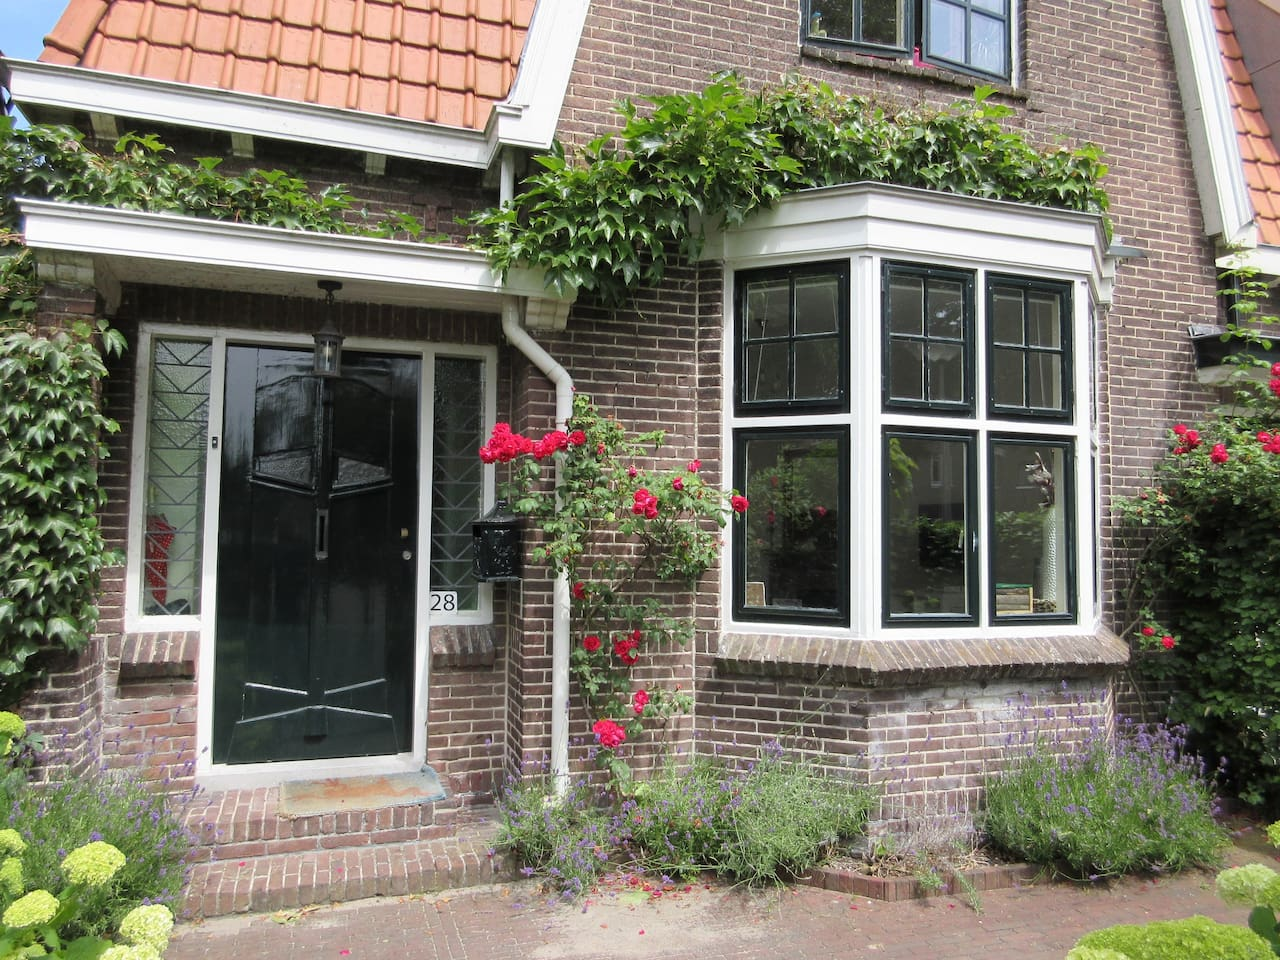 Our lovely semi attached typical Dutch house from 1922, with roses all over.